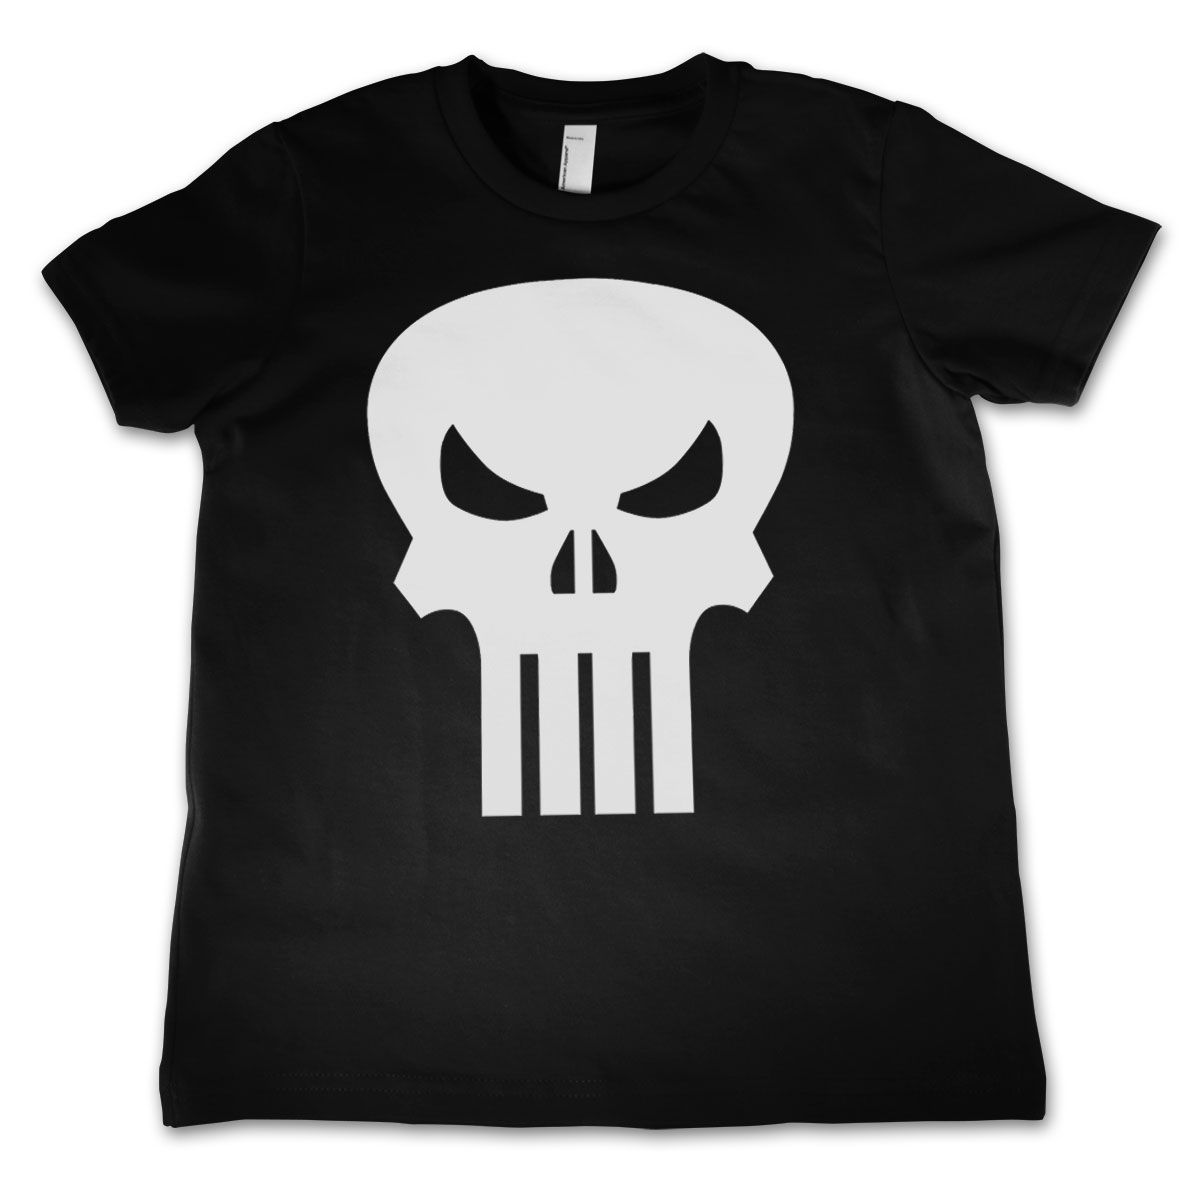 """a455a170 """"The Punisher Skull Kids T-Shirt """" #punisher #punisherstyle #punishermovie  #punisherkaskus #punishermotto #punishertraining #punishertrailer  #punishermax ..."""